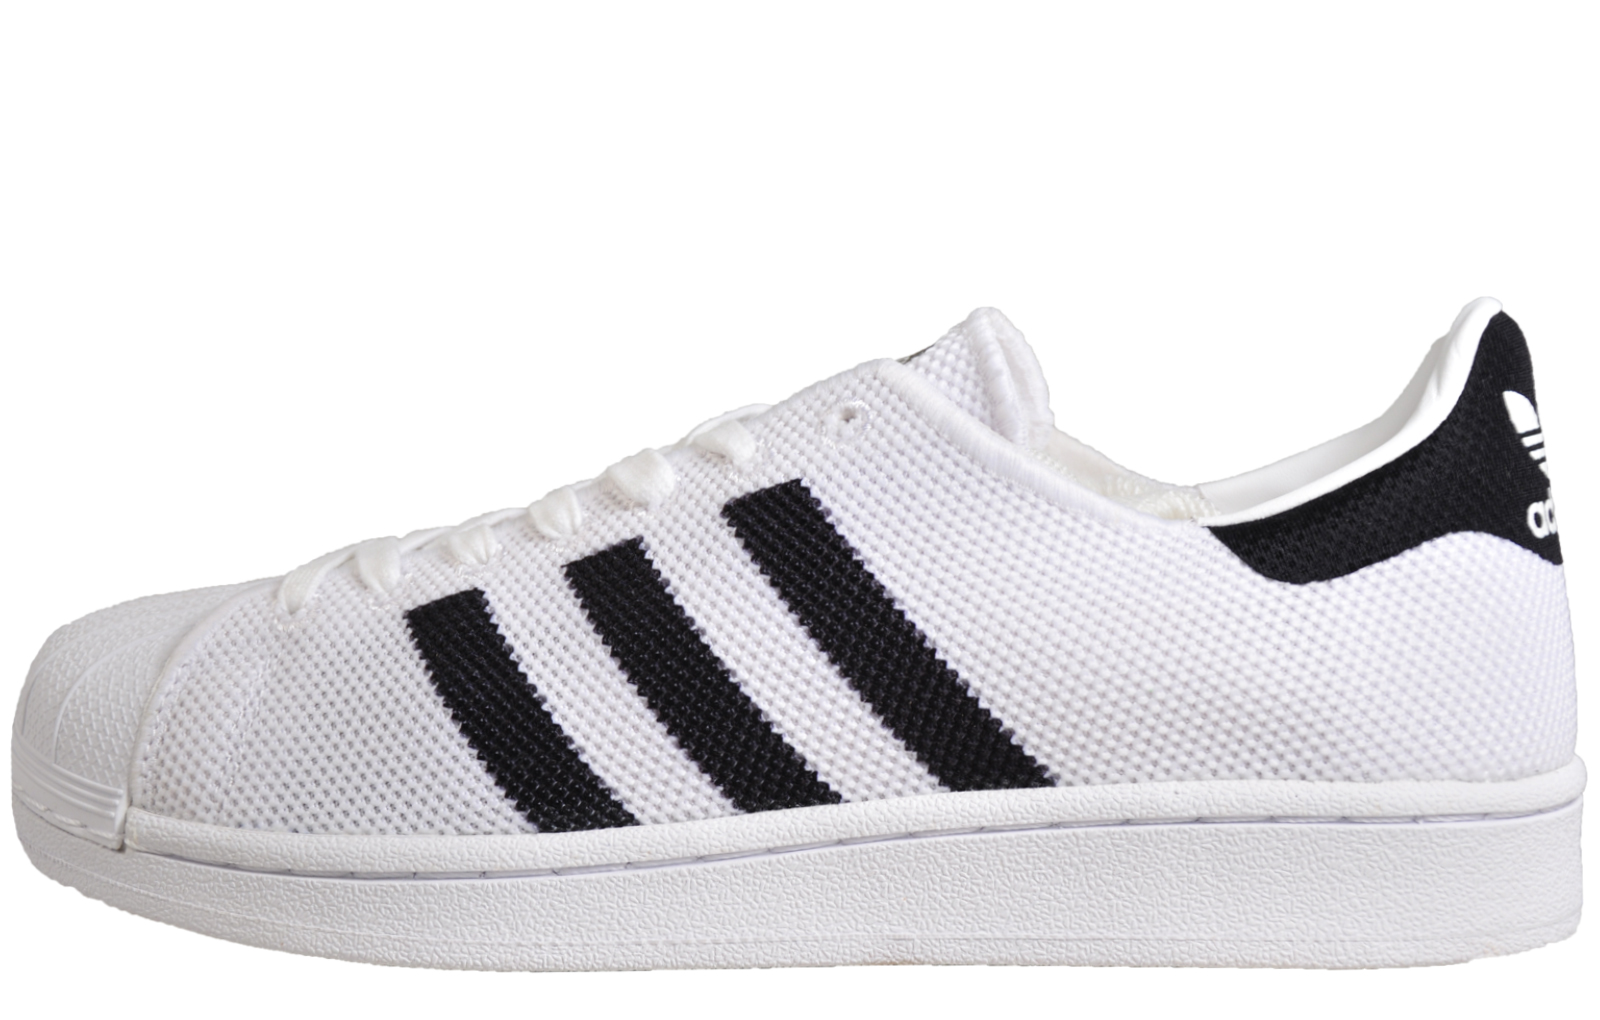 Adidas Originals Superstar men s Classic Casual Vintage Trainers White f1a797a678